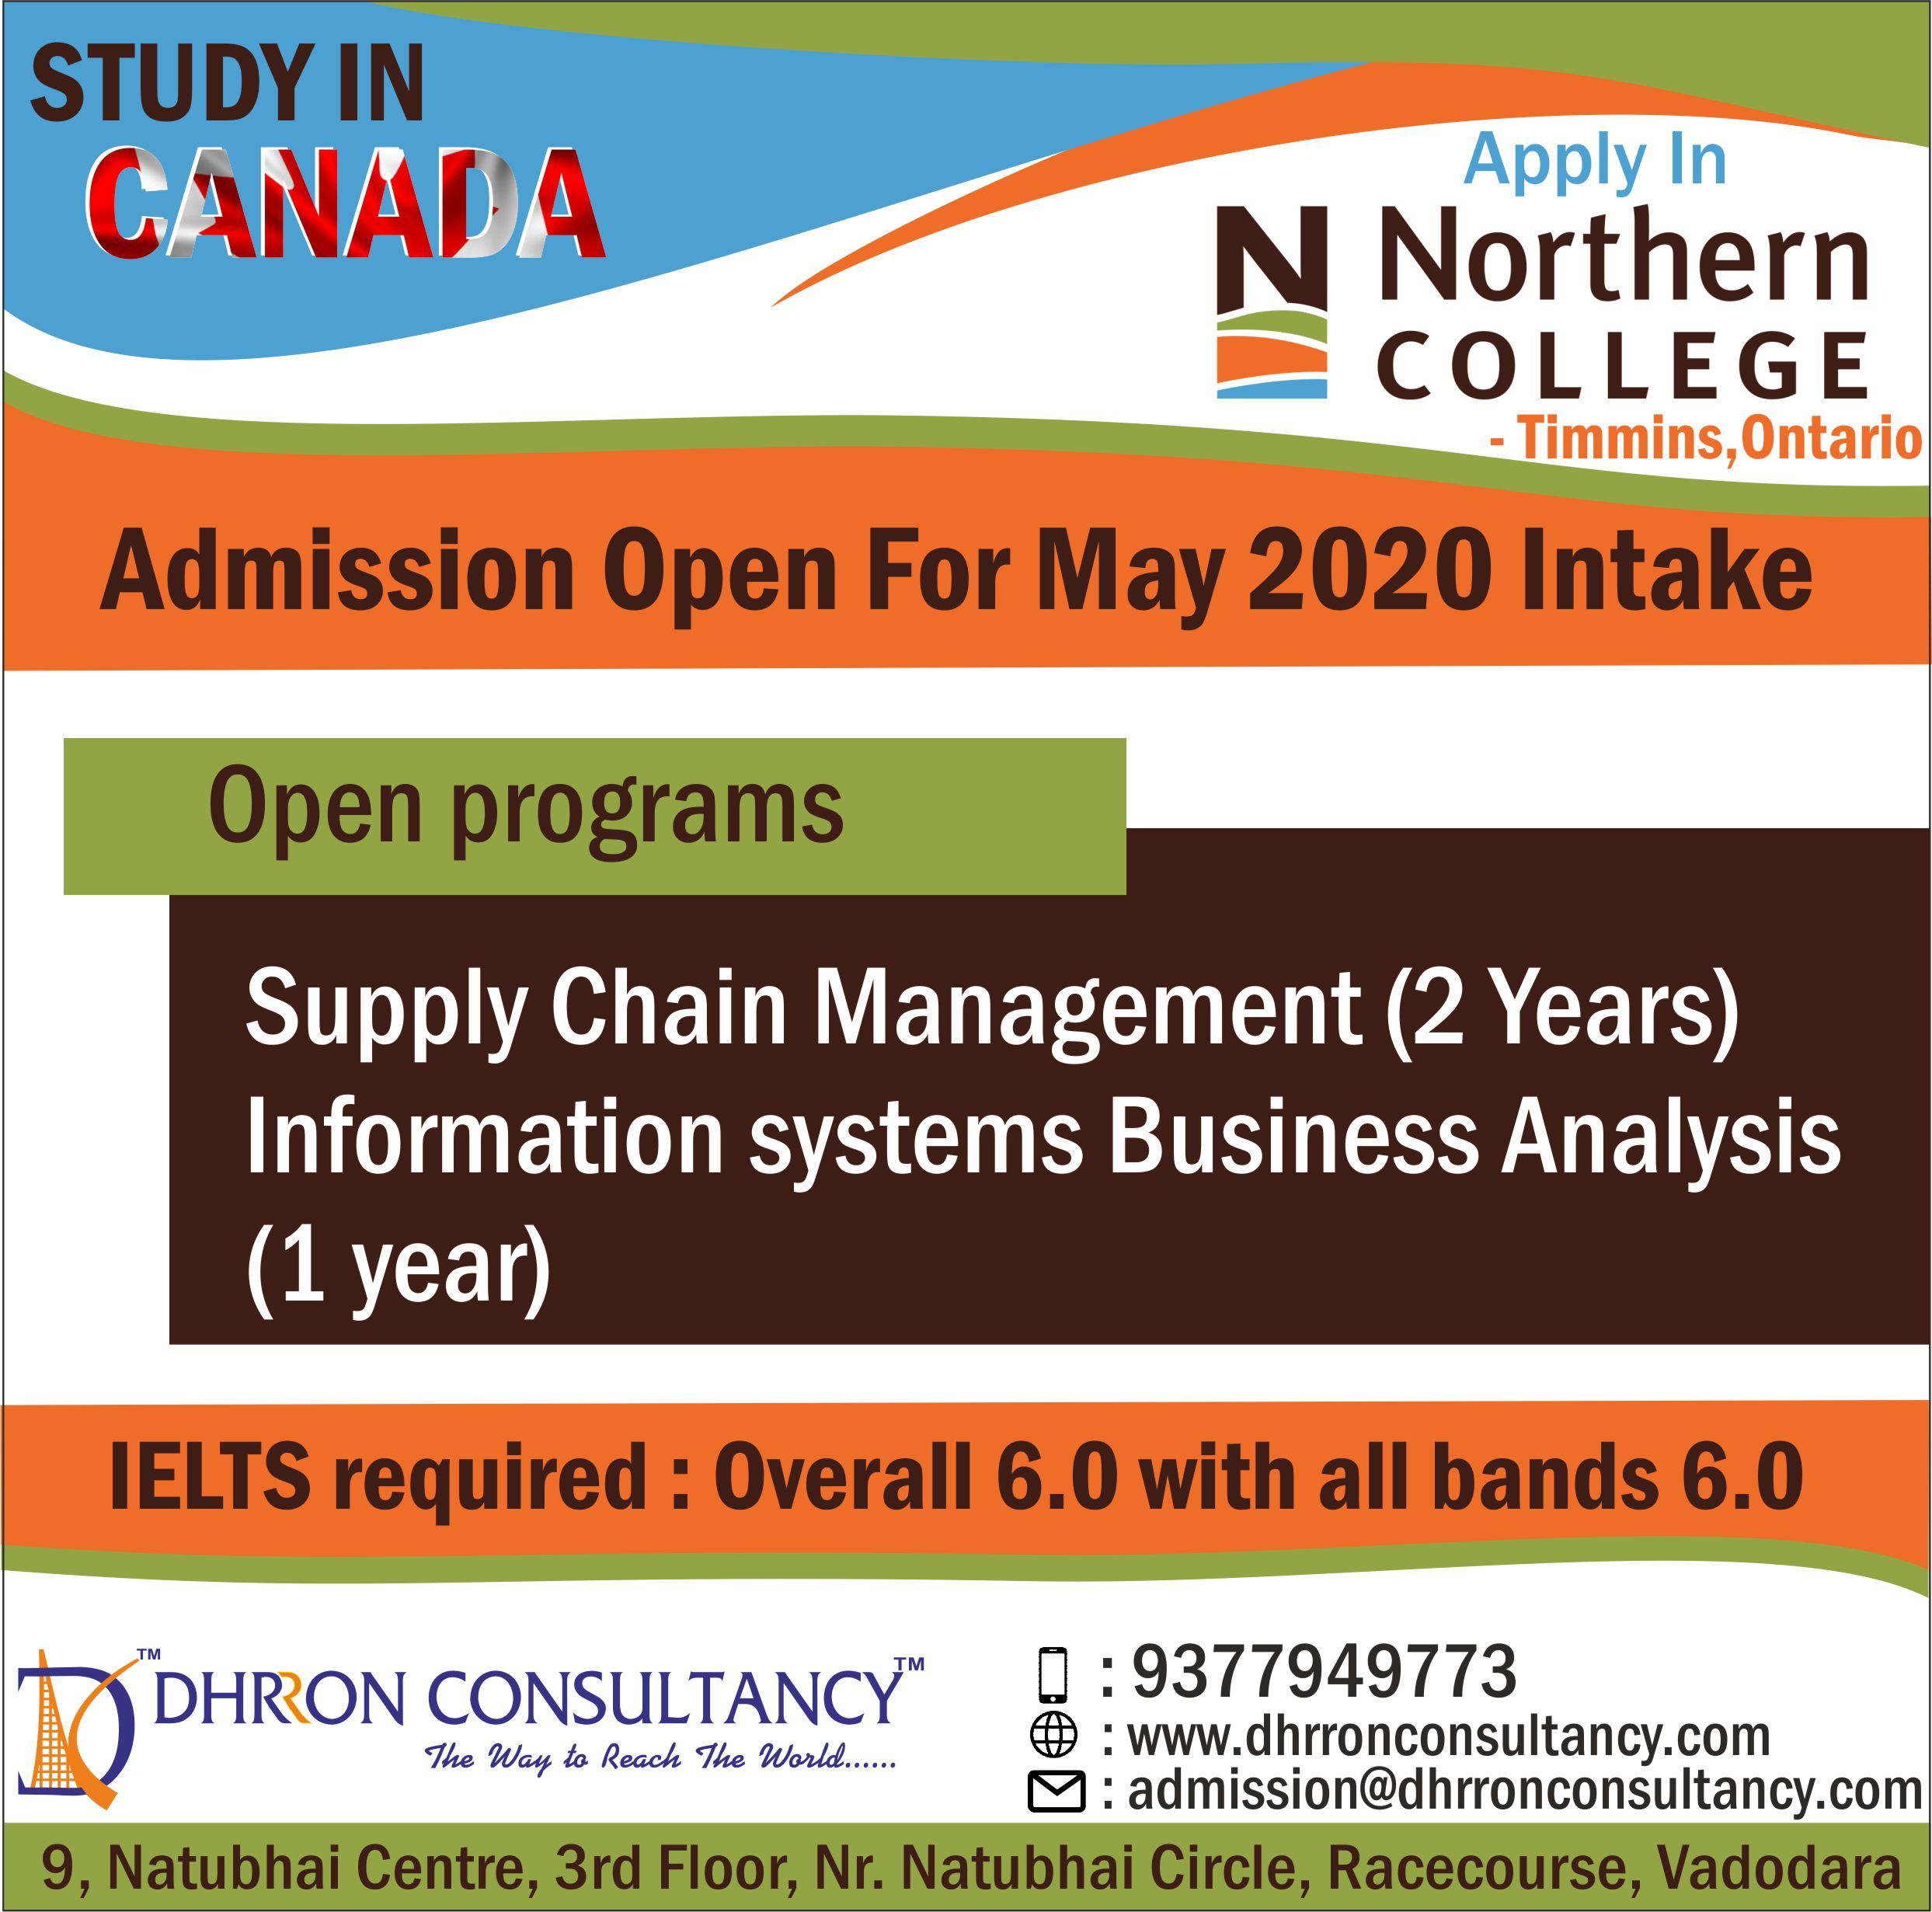 Studyincanada Apply At Northern College For May2020 Intake Call 9377949773 Business Analysis How To Apply Timmins